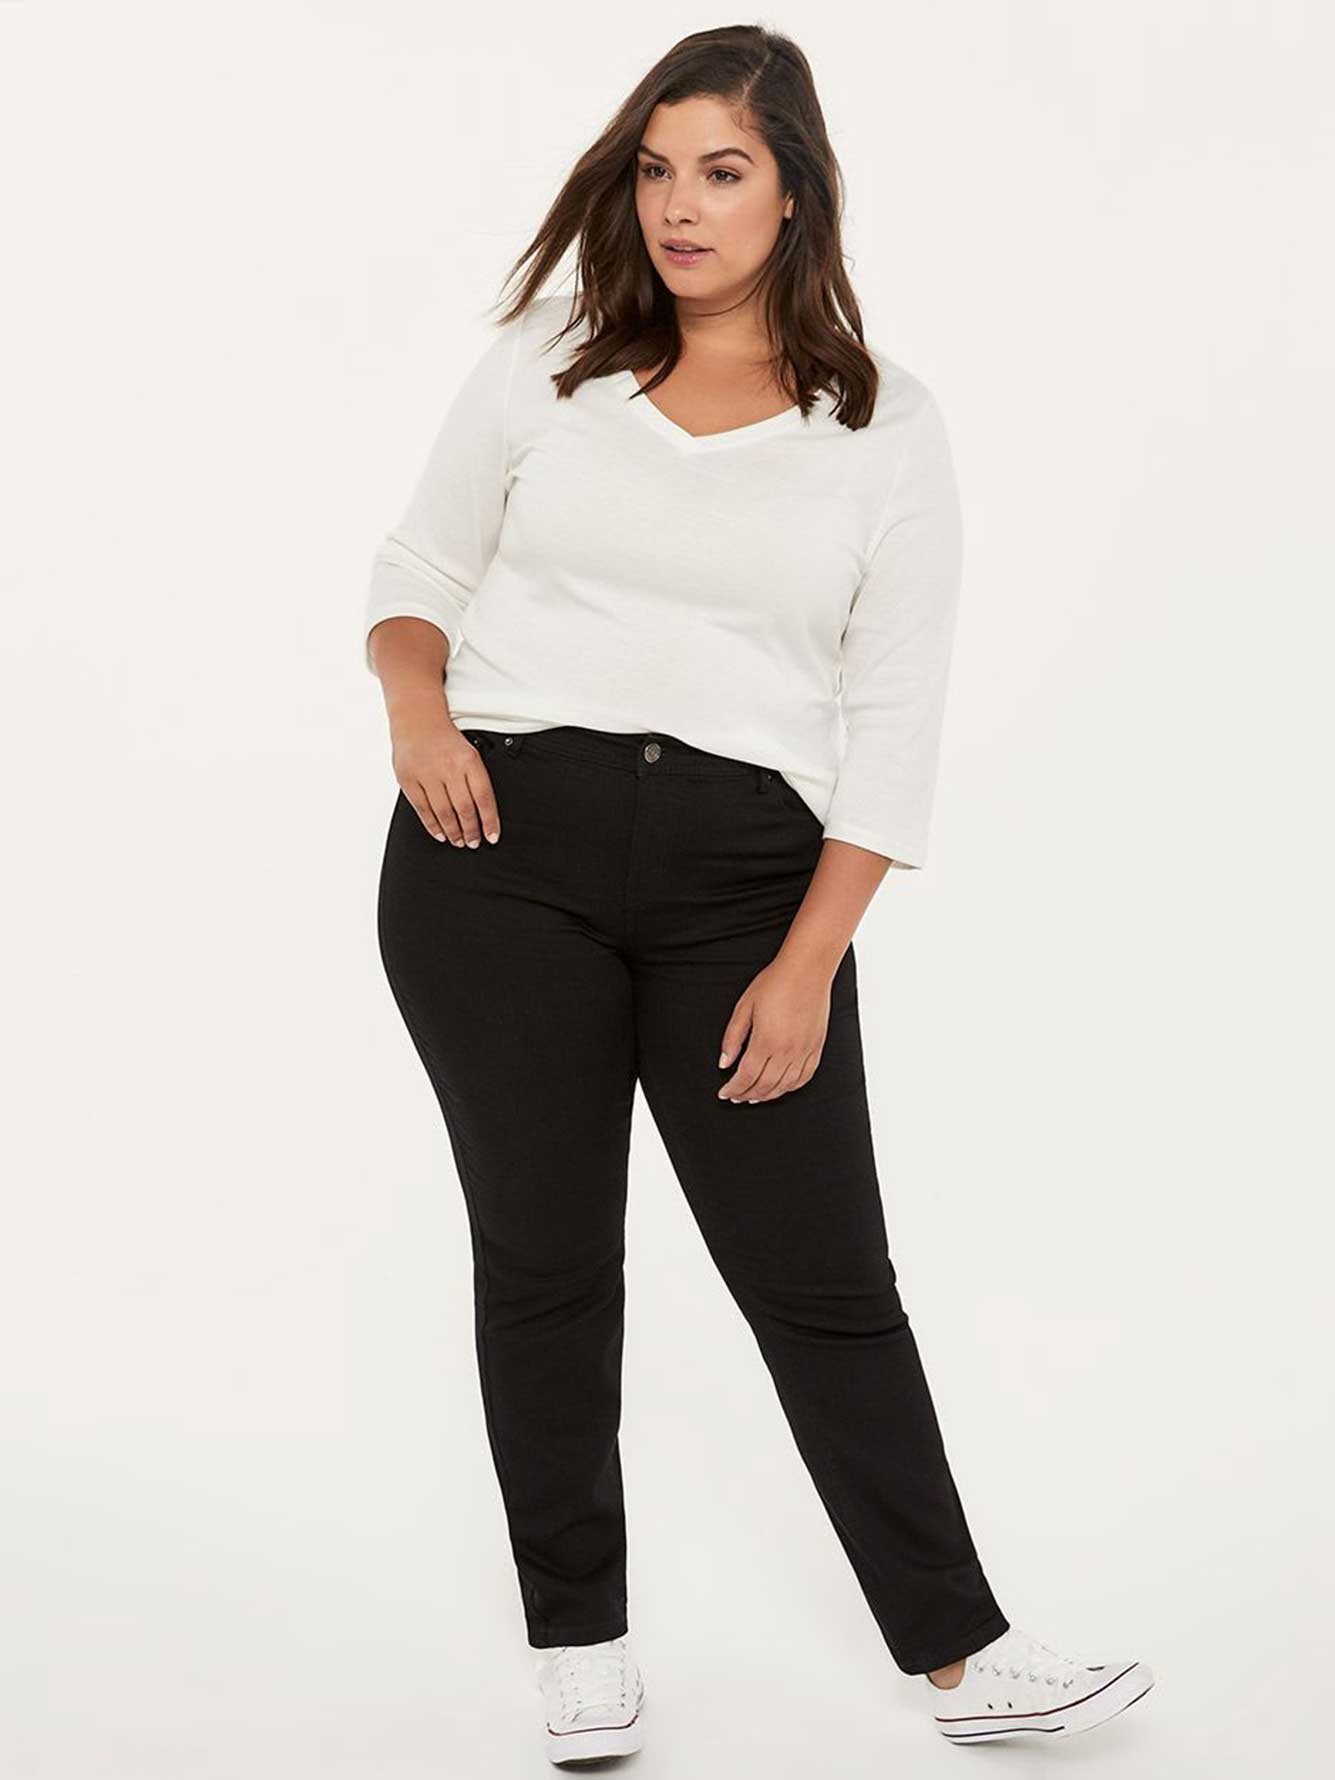 826bc8c487794 ONLINE ONLY - Tall Slightly Curvy Fit Straight Leg Black Jean - d/C JEANS